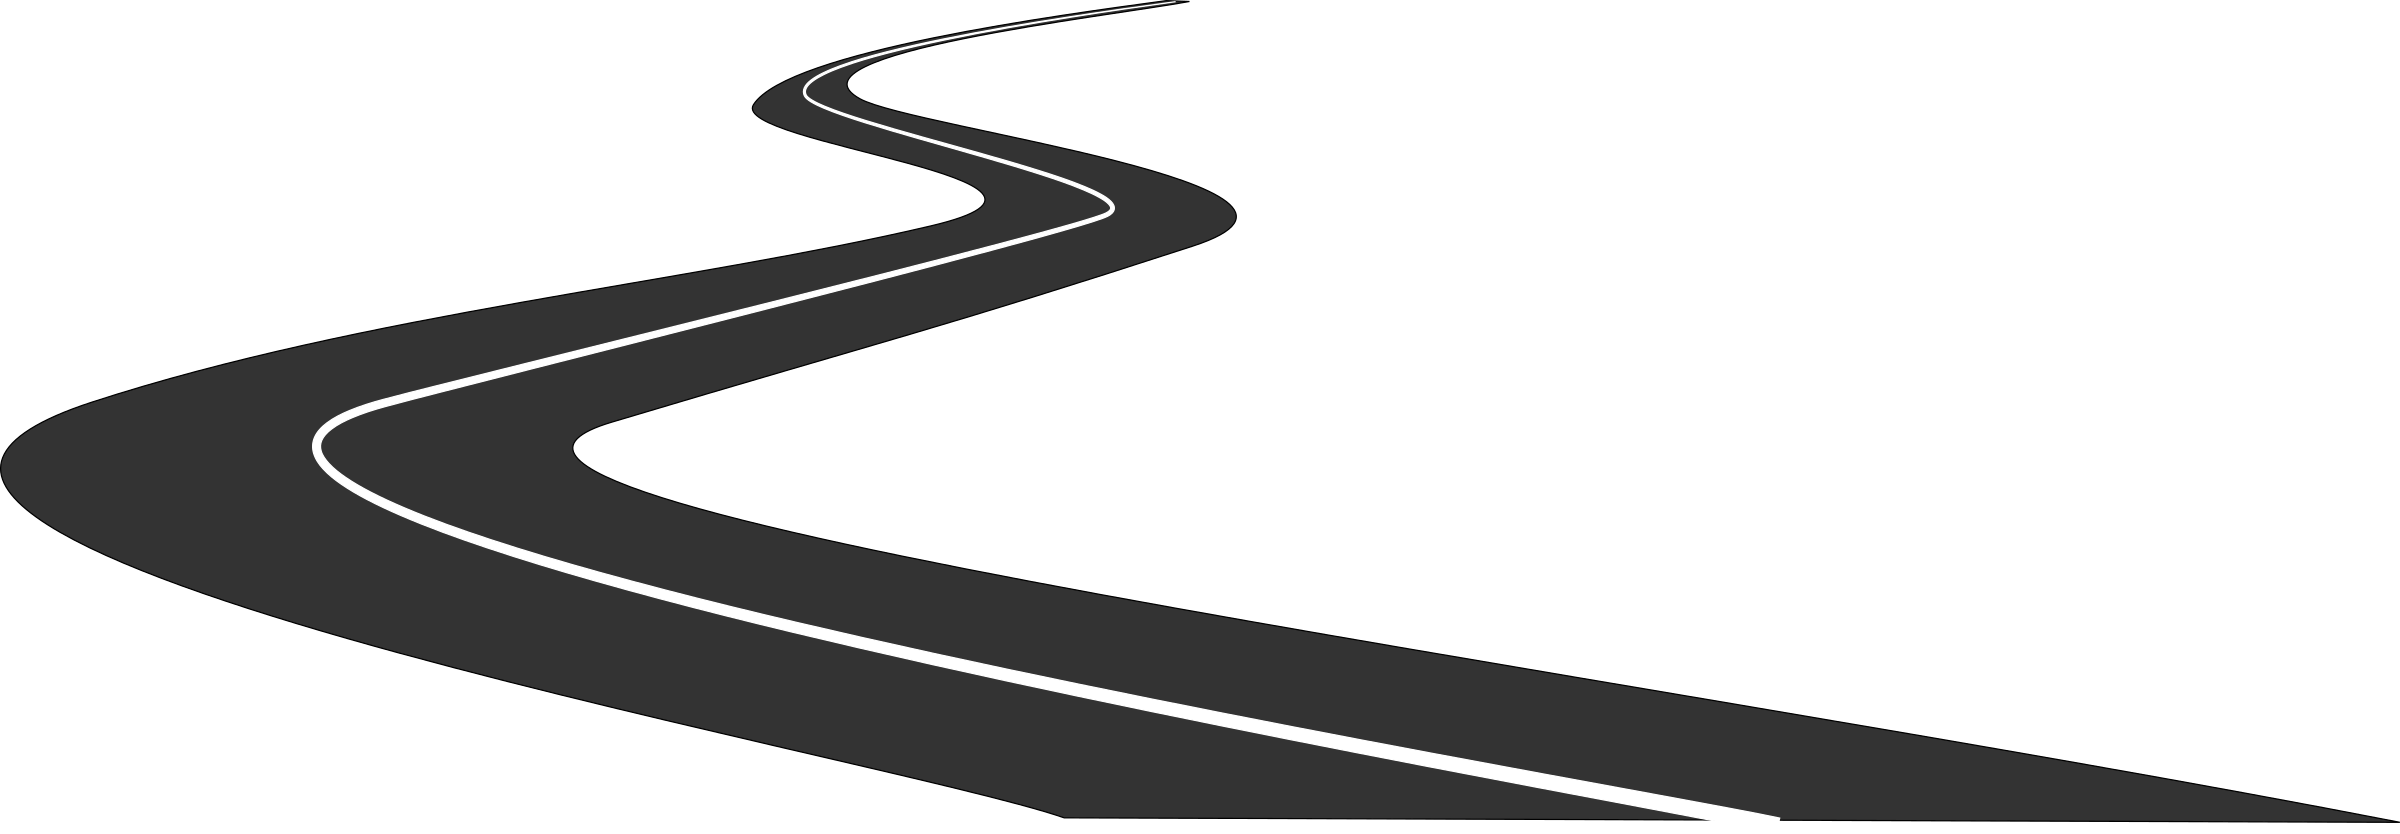 Winding road silhouette at. Pathway clipart path